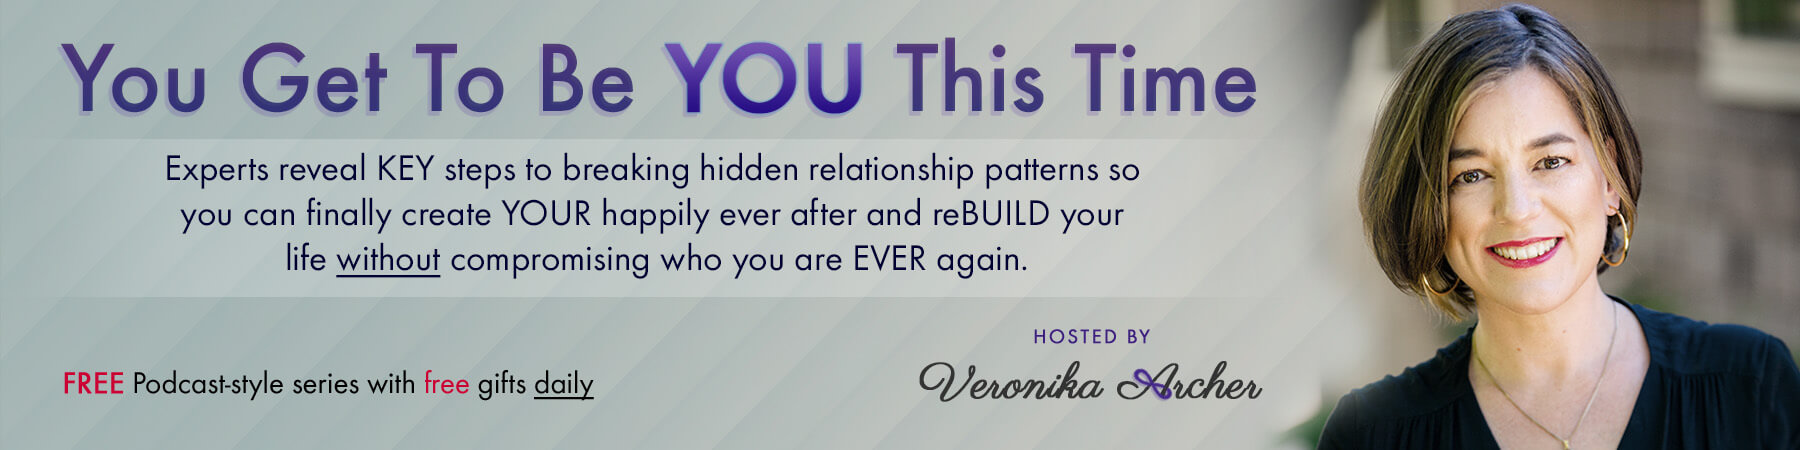 You Get To Be YOU This Time featuring Veronica Archer